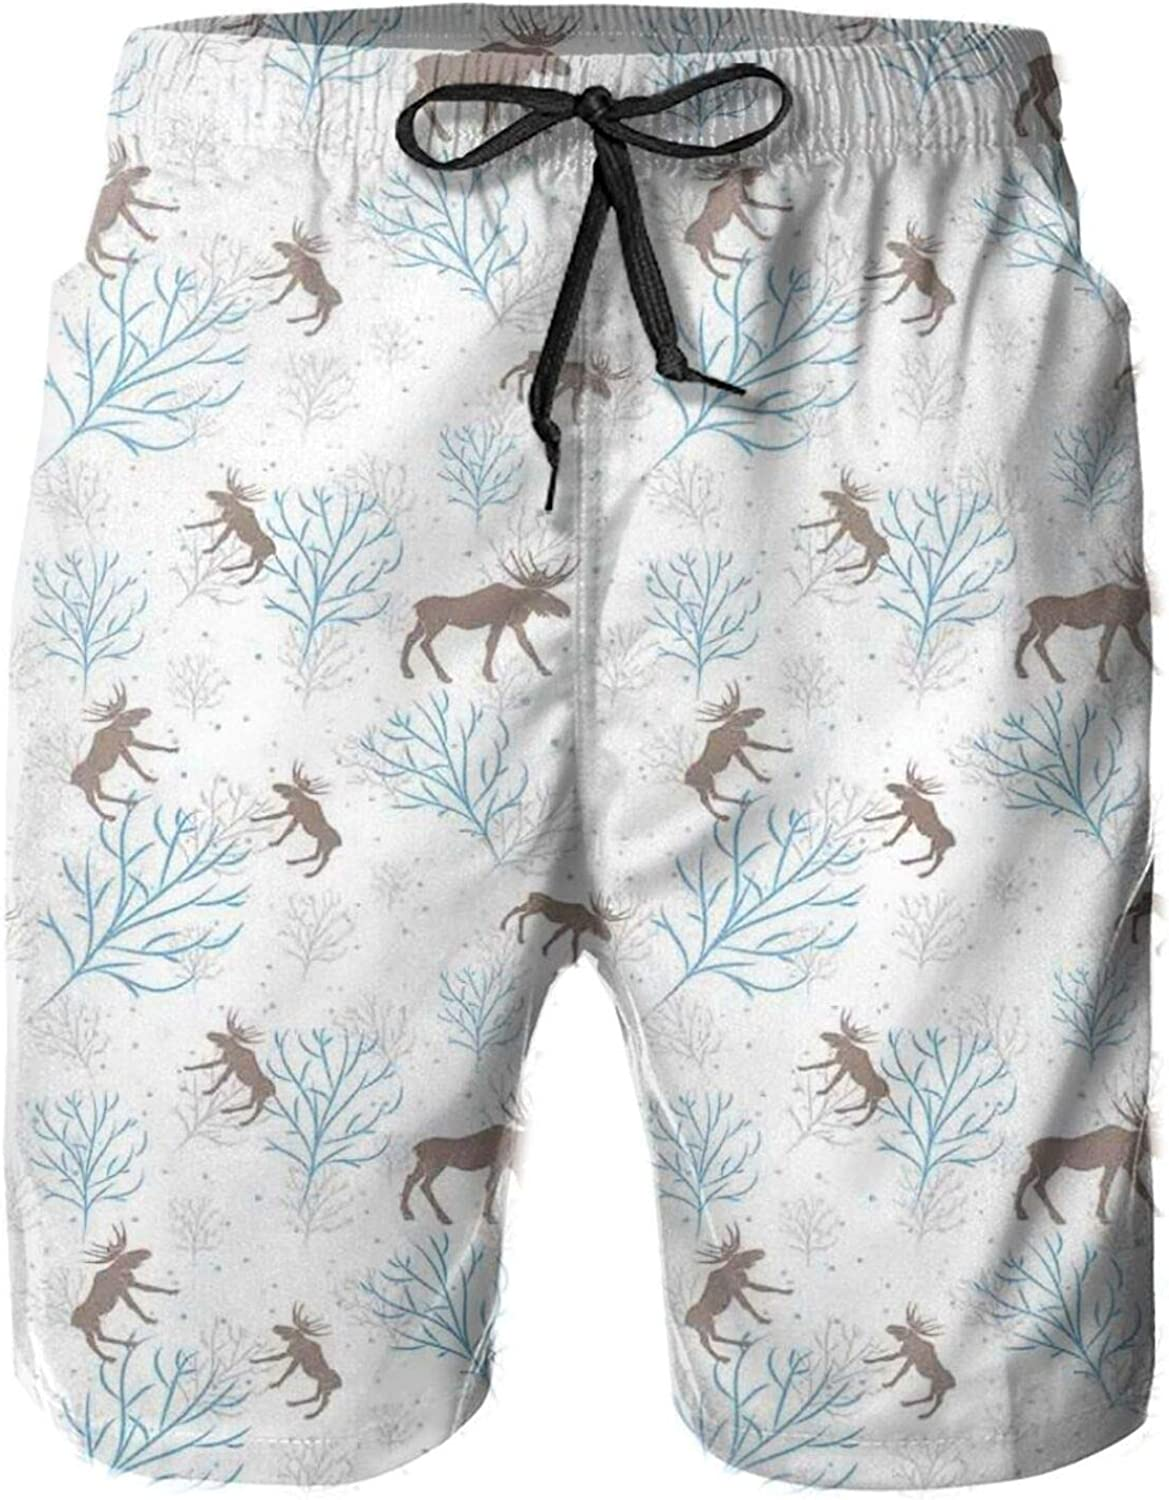 Winter Forest Retro Illustration with Reindeer and Trees Snowy Xmas Nature Mens Swim Trucks Shorts with Mesh Lining,M